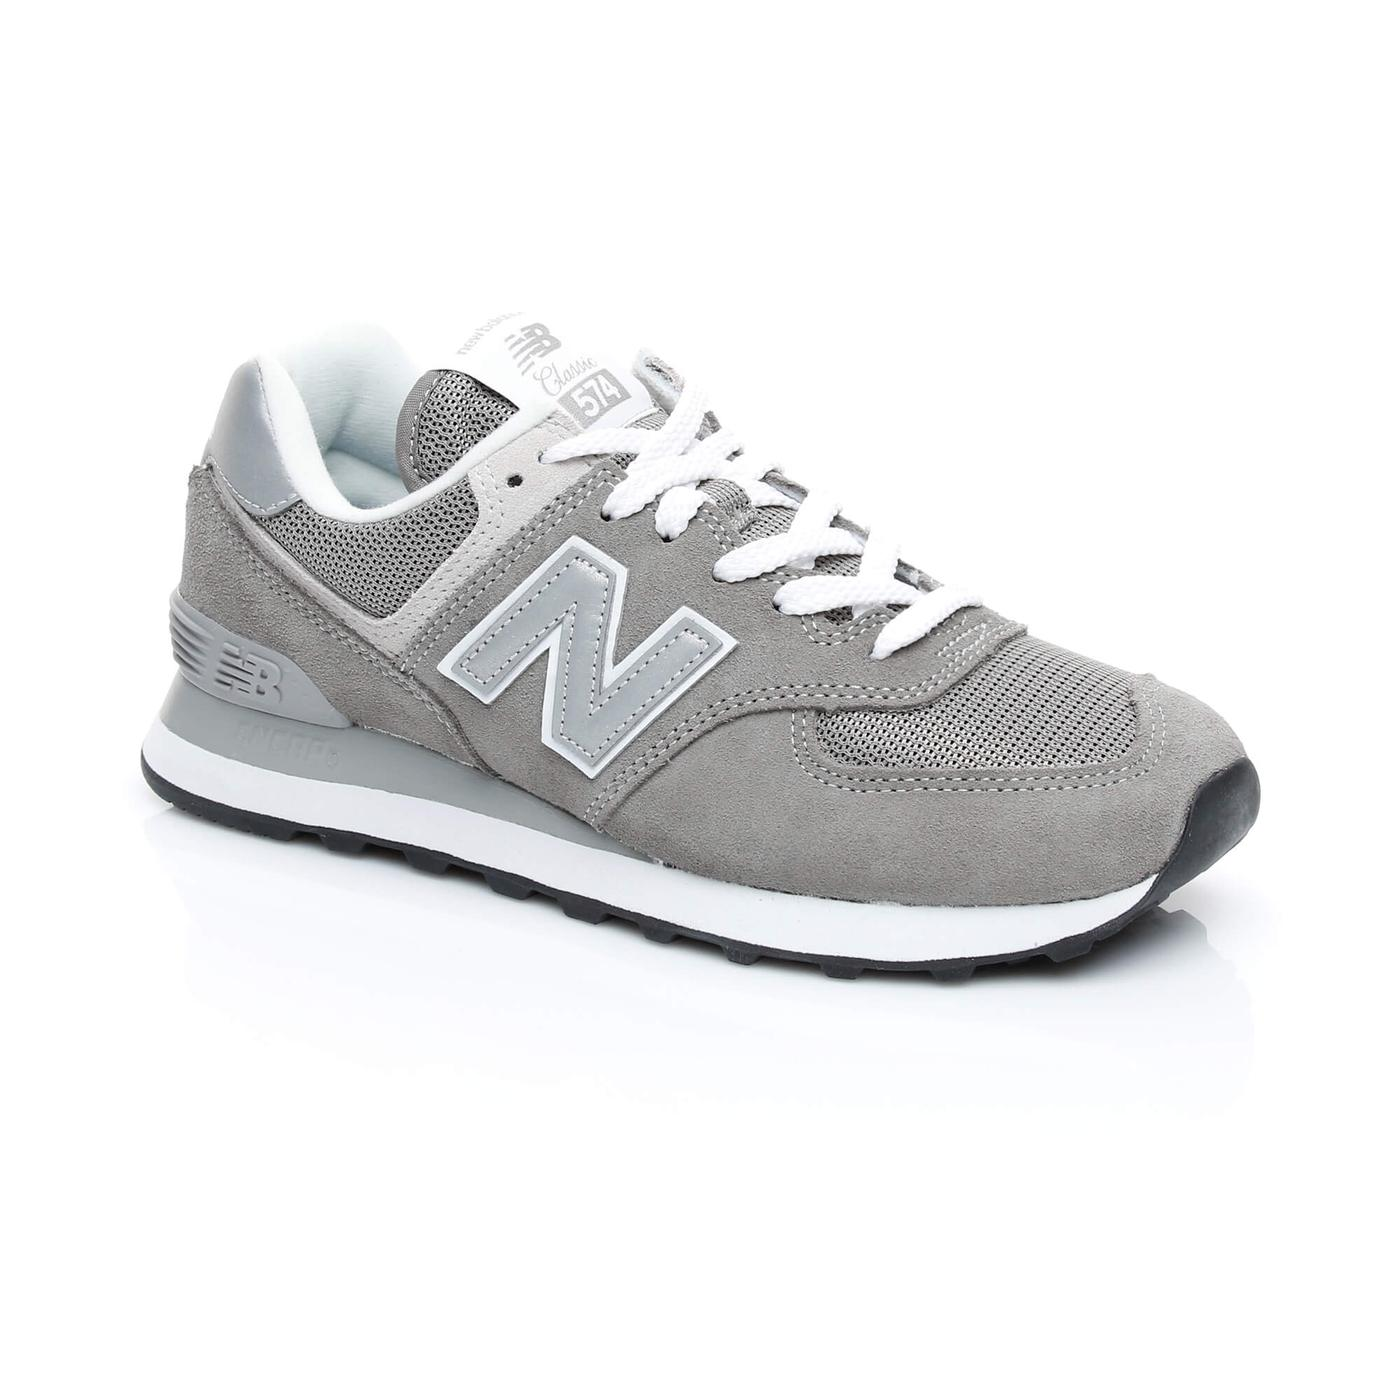 wl574eg new balance Up to 80% OFF Clearance Promotional Products ...